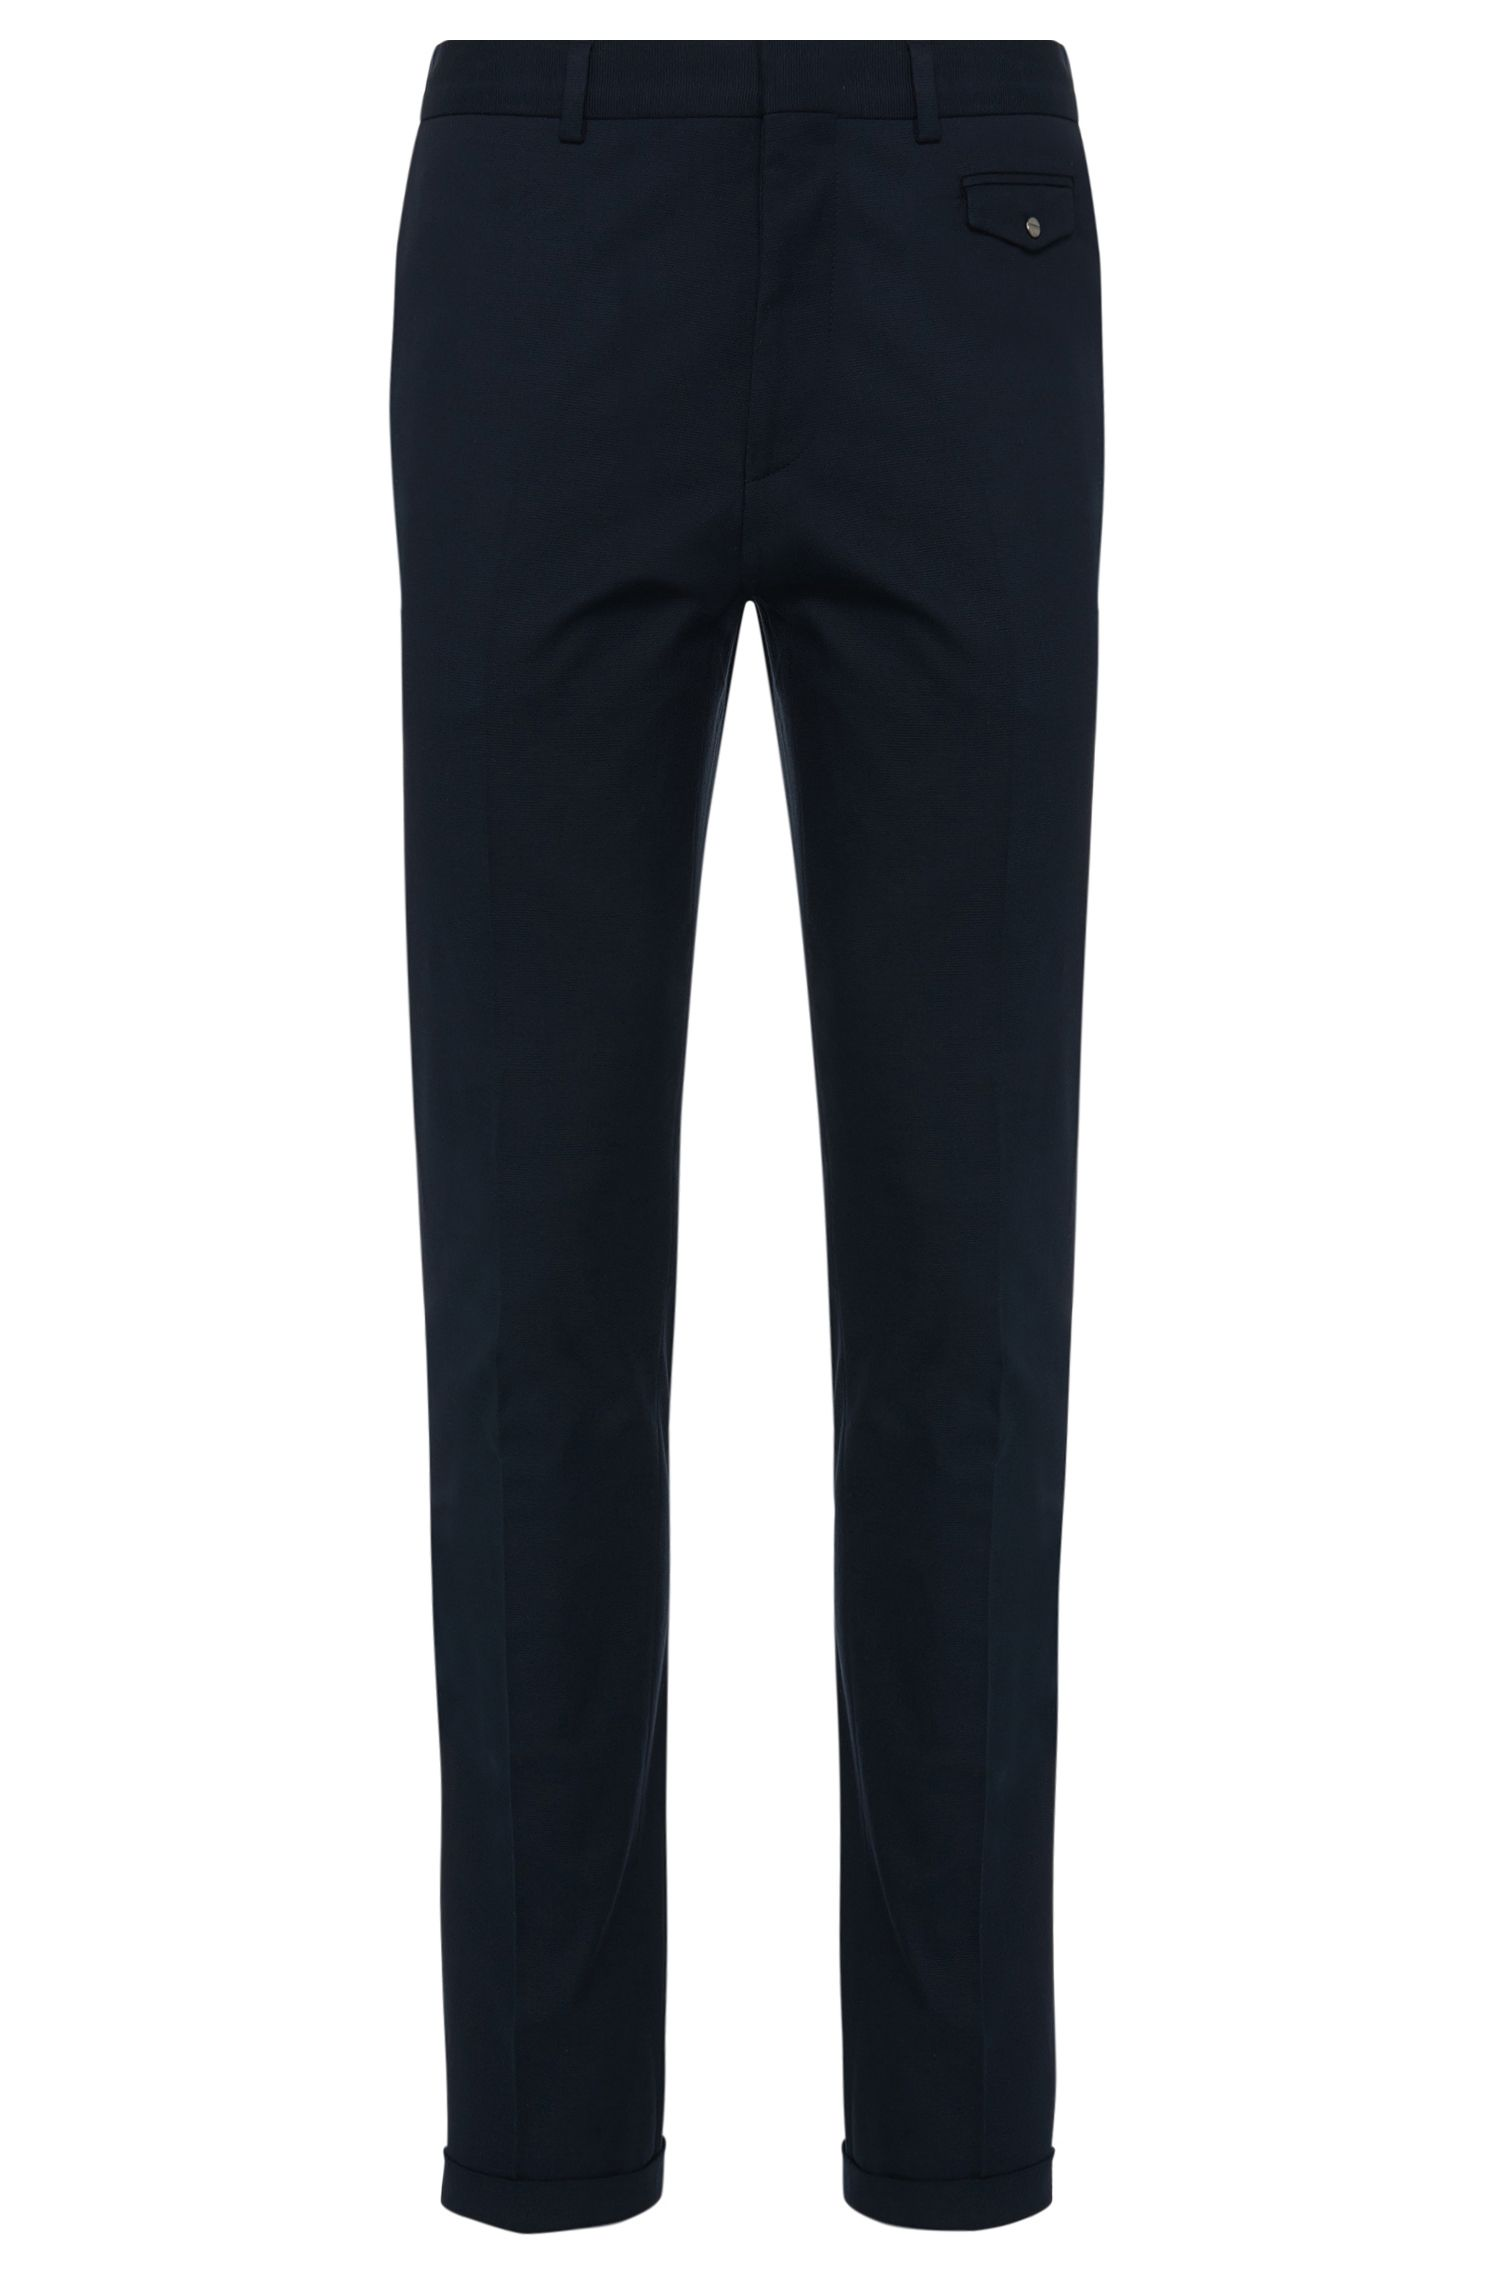 'Harenz' | Extra Slim Fit, Stretch Cotton Pants